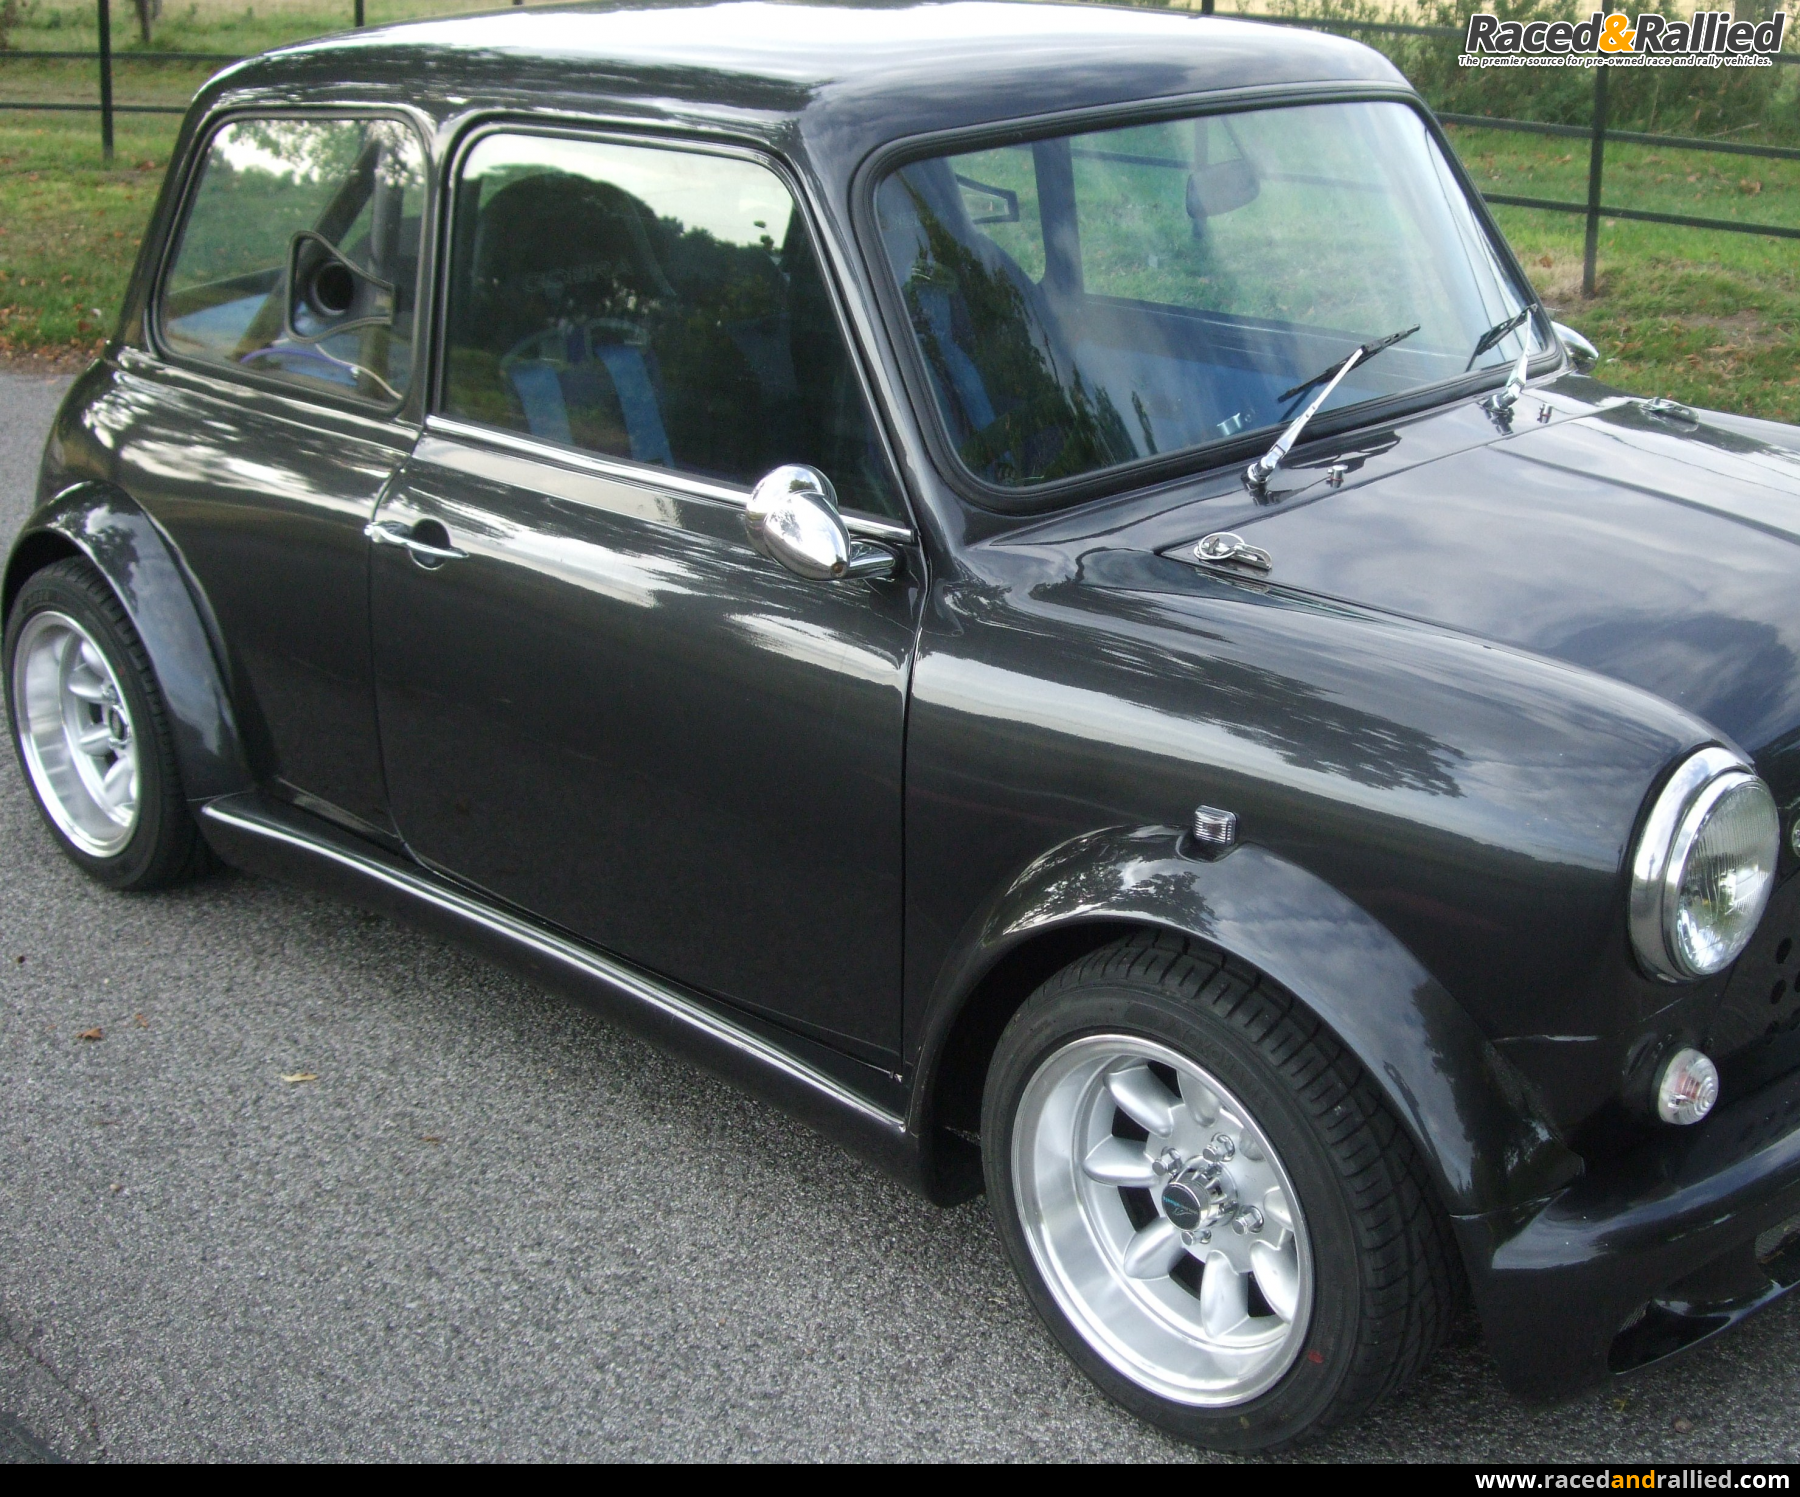 Z Cars Hayabusa Mini Trimmed In Leather,roll Cage,mot And